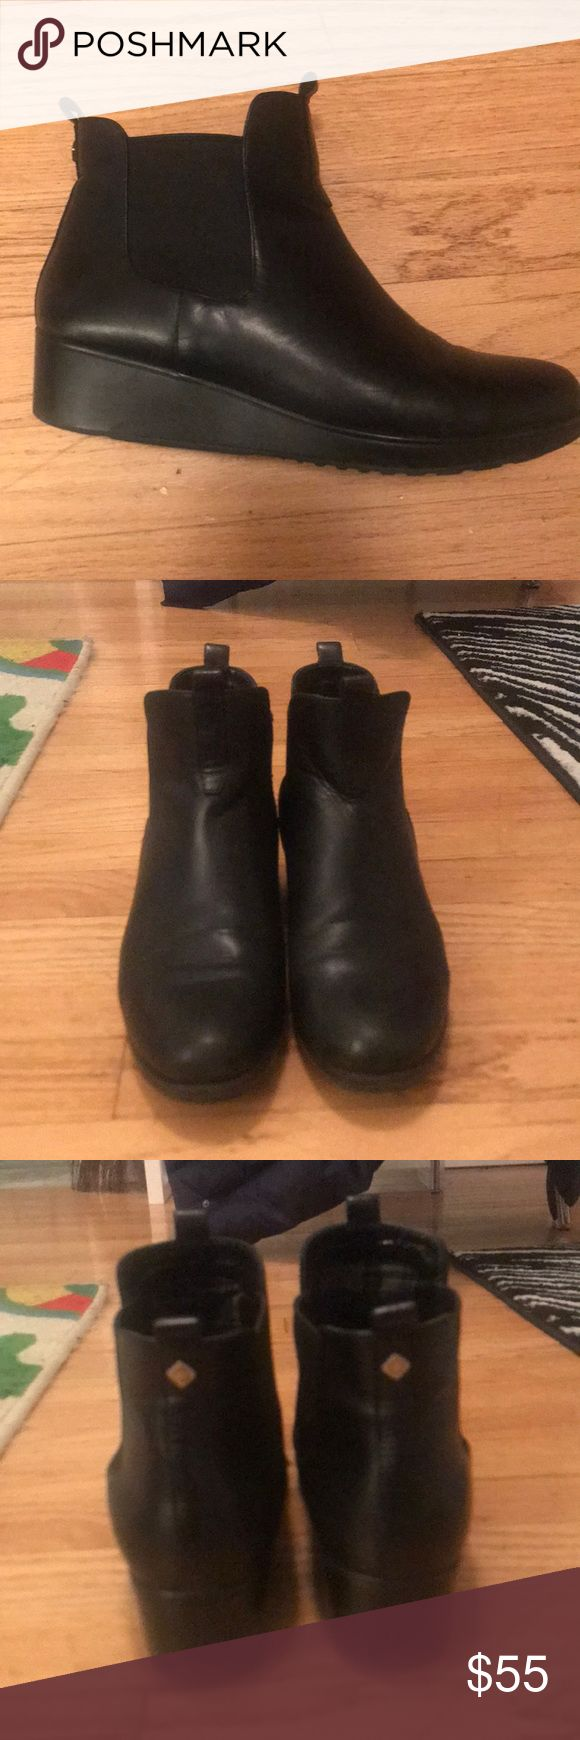 Cole Haan Waterproof wedge boots Cute and functional black waterproof boots from Cole Haan. Boots have a short, wedged heel, and elastic around the ankle. There is a small piece of gold hardware on the back of each boot as well as a dark plaid interior. These boots have had their soles reglued once. There are no noticeable defects in the leather or heels. On the tips of both shoes there is a slight separation between the uppers and soles but it is barely noticeable (pictured above). Well…